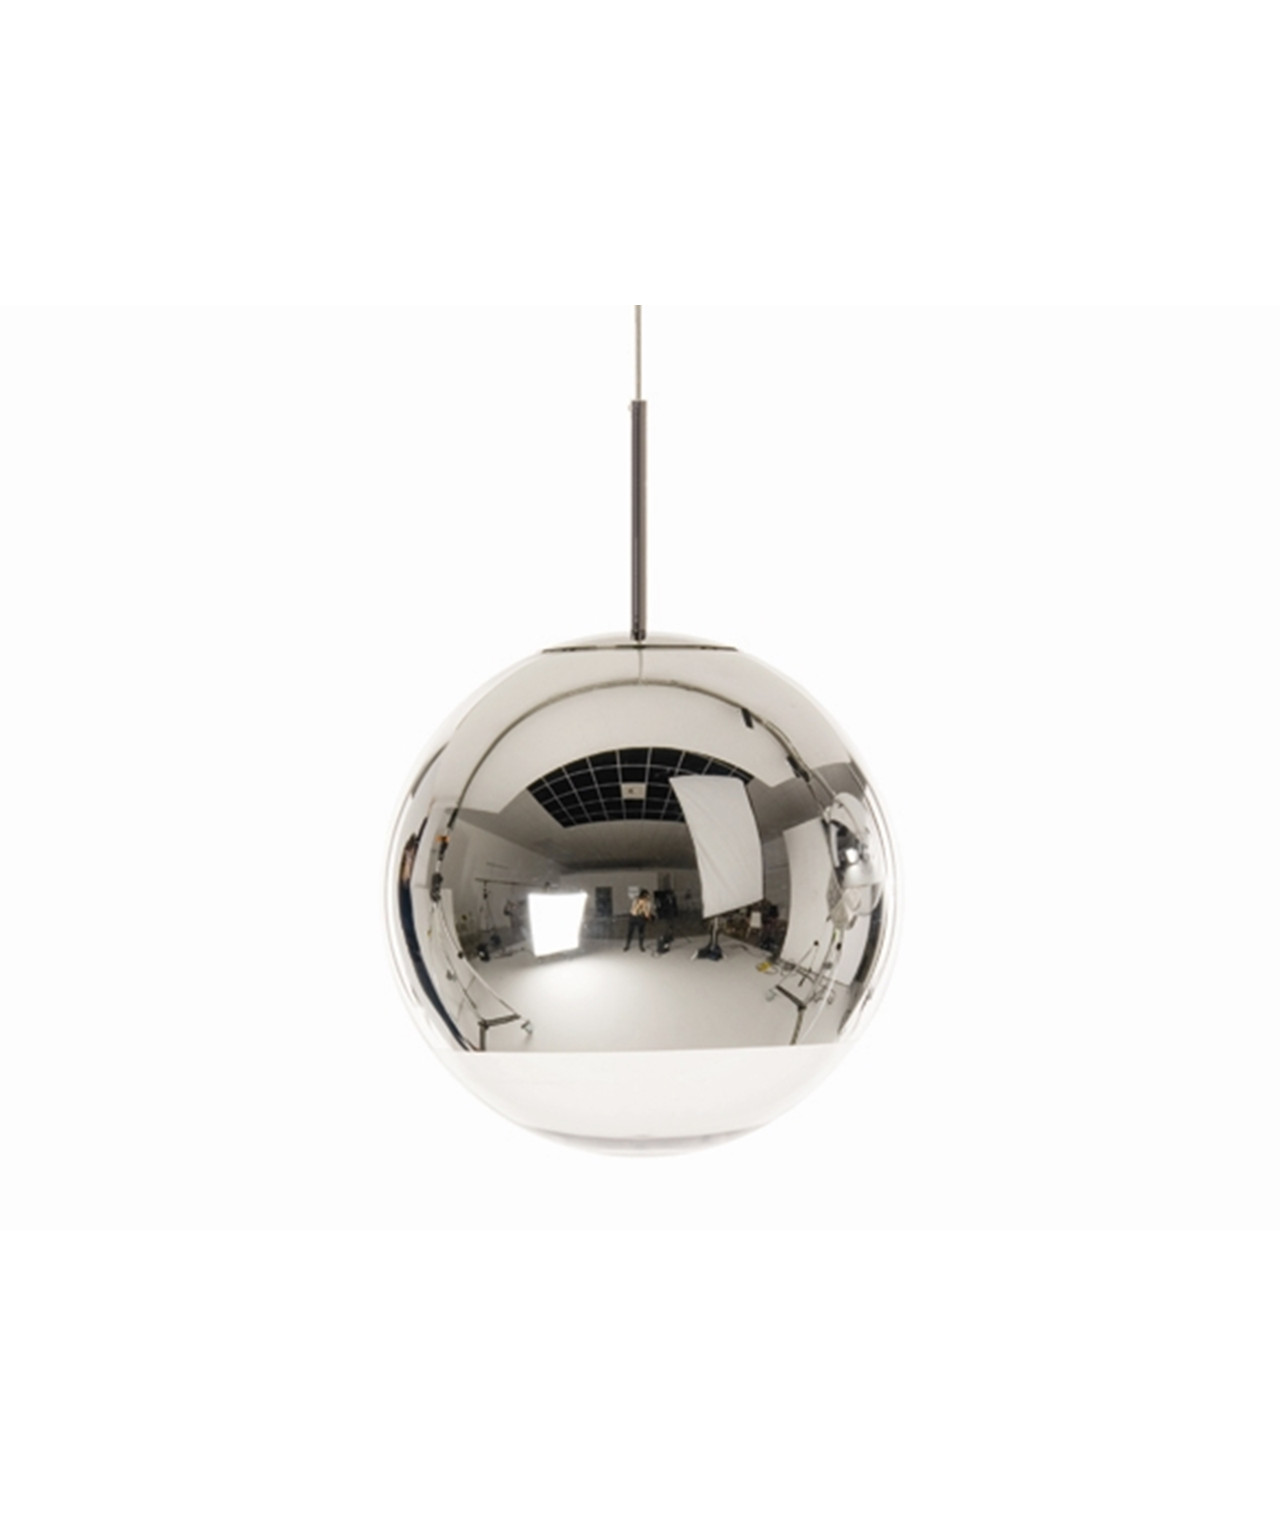 Image of   Mirror Ball 40 Pendel - Tom Dixon